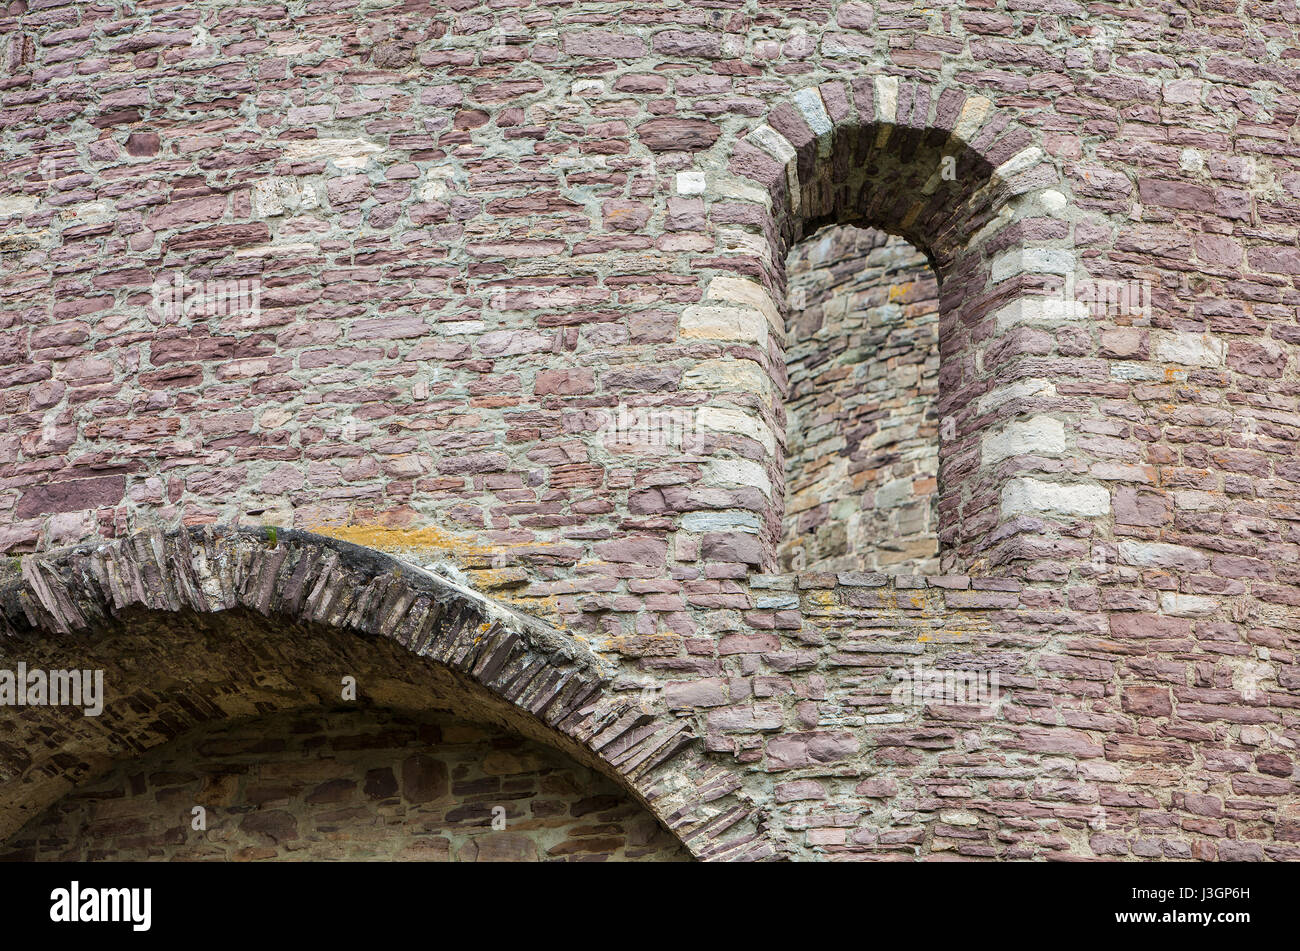 Old walls built with red sandstone from the Weserbergland, Krukenburg Castle, Helmarshausen, Bad Karlshafen, Hesse, - Stock Image